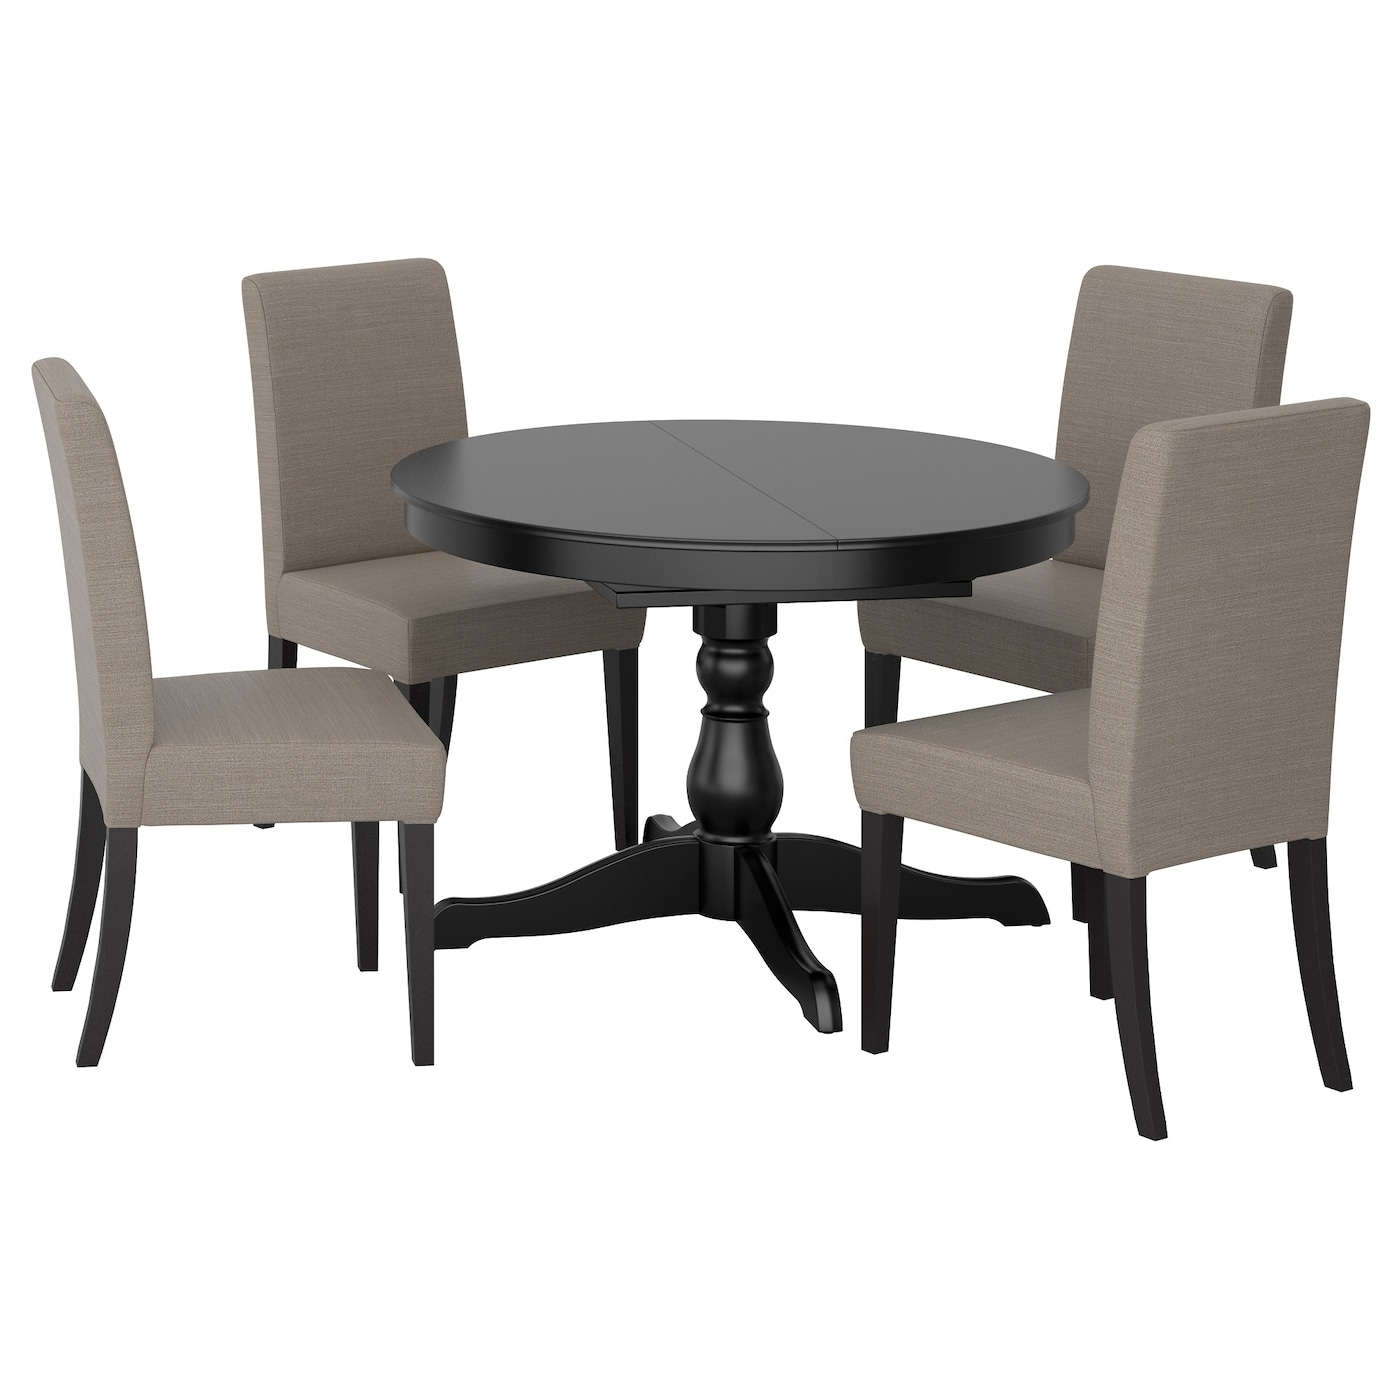 Ingatorp henriksdal table and 4 chairs black nolhaga grey for Set de table ikea